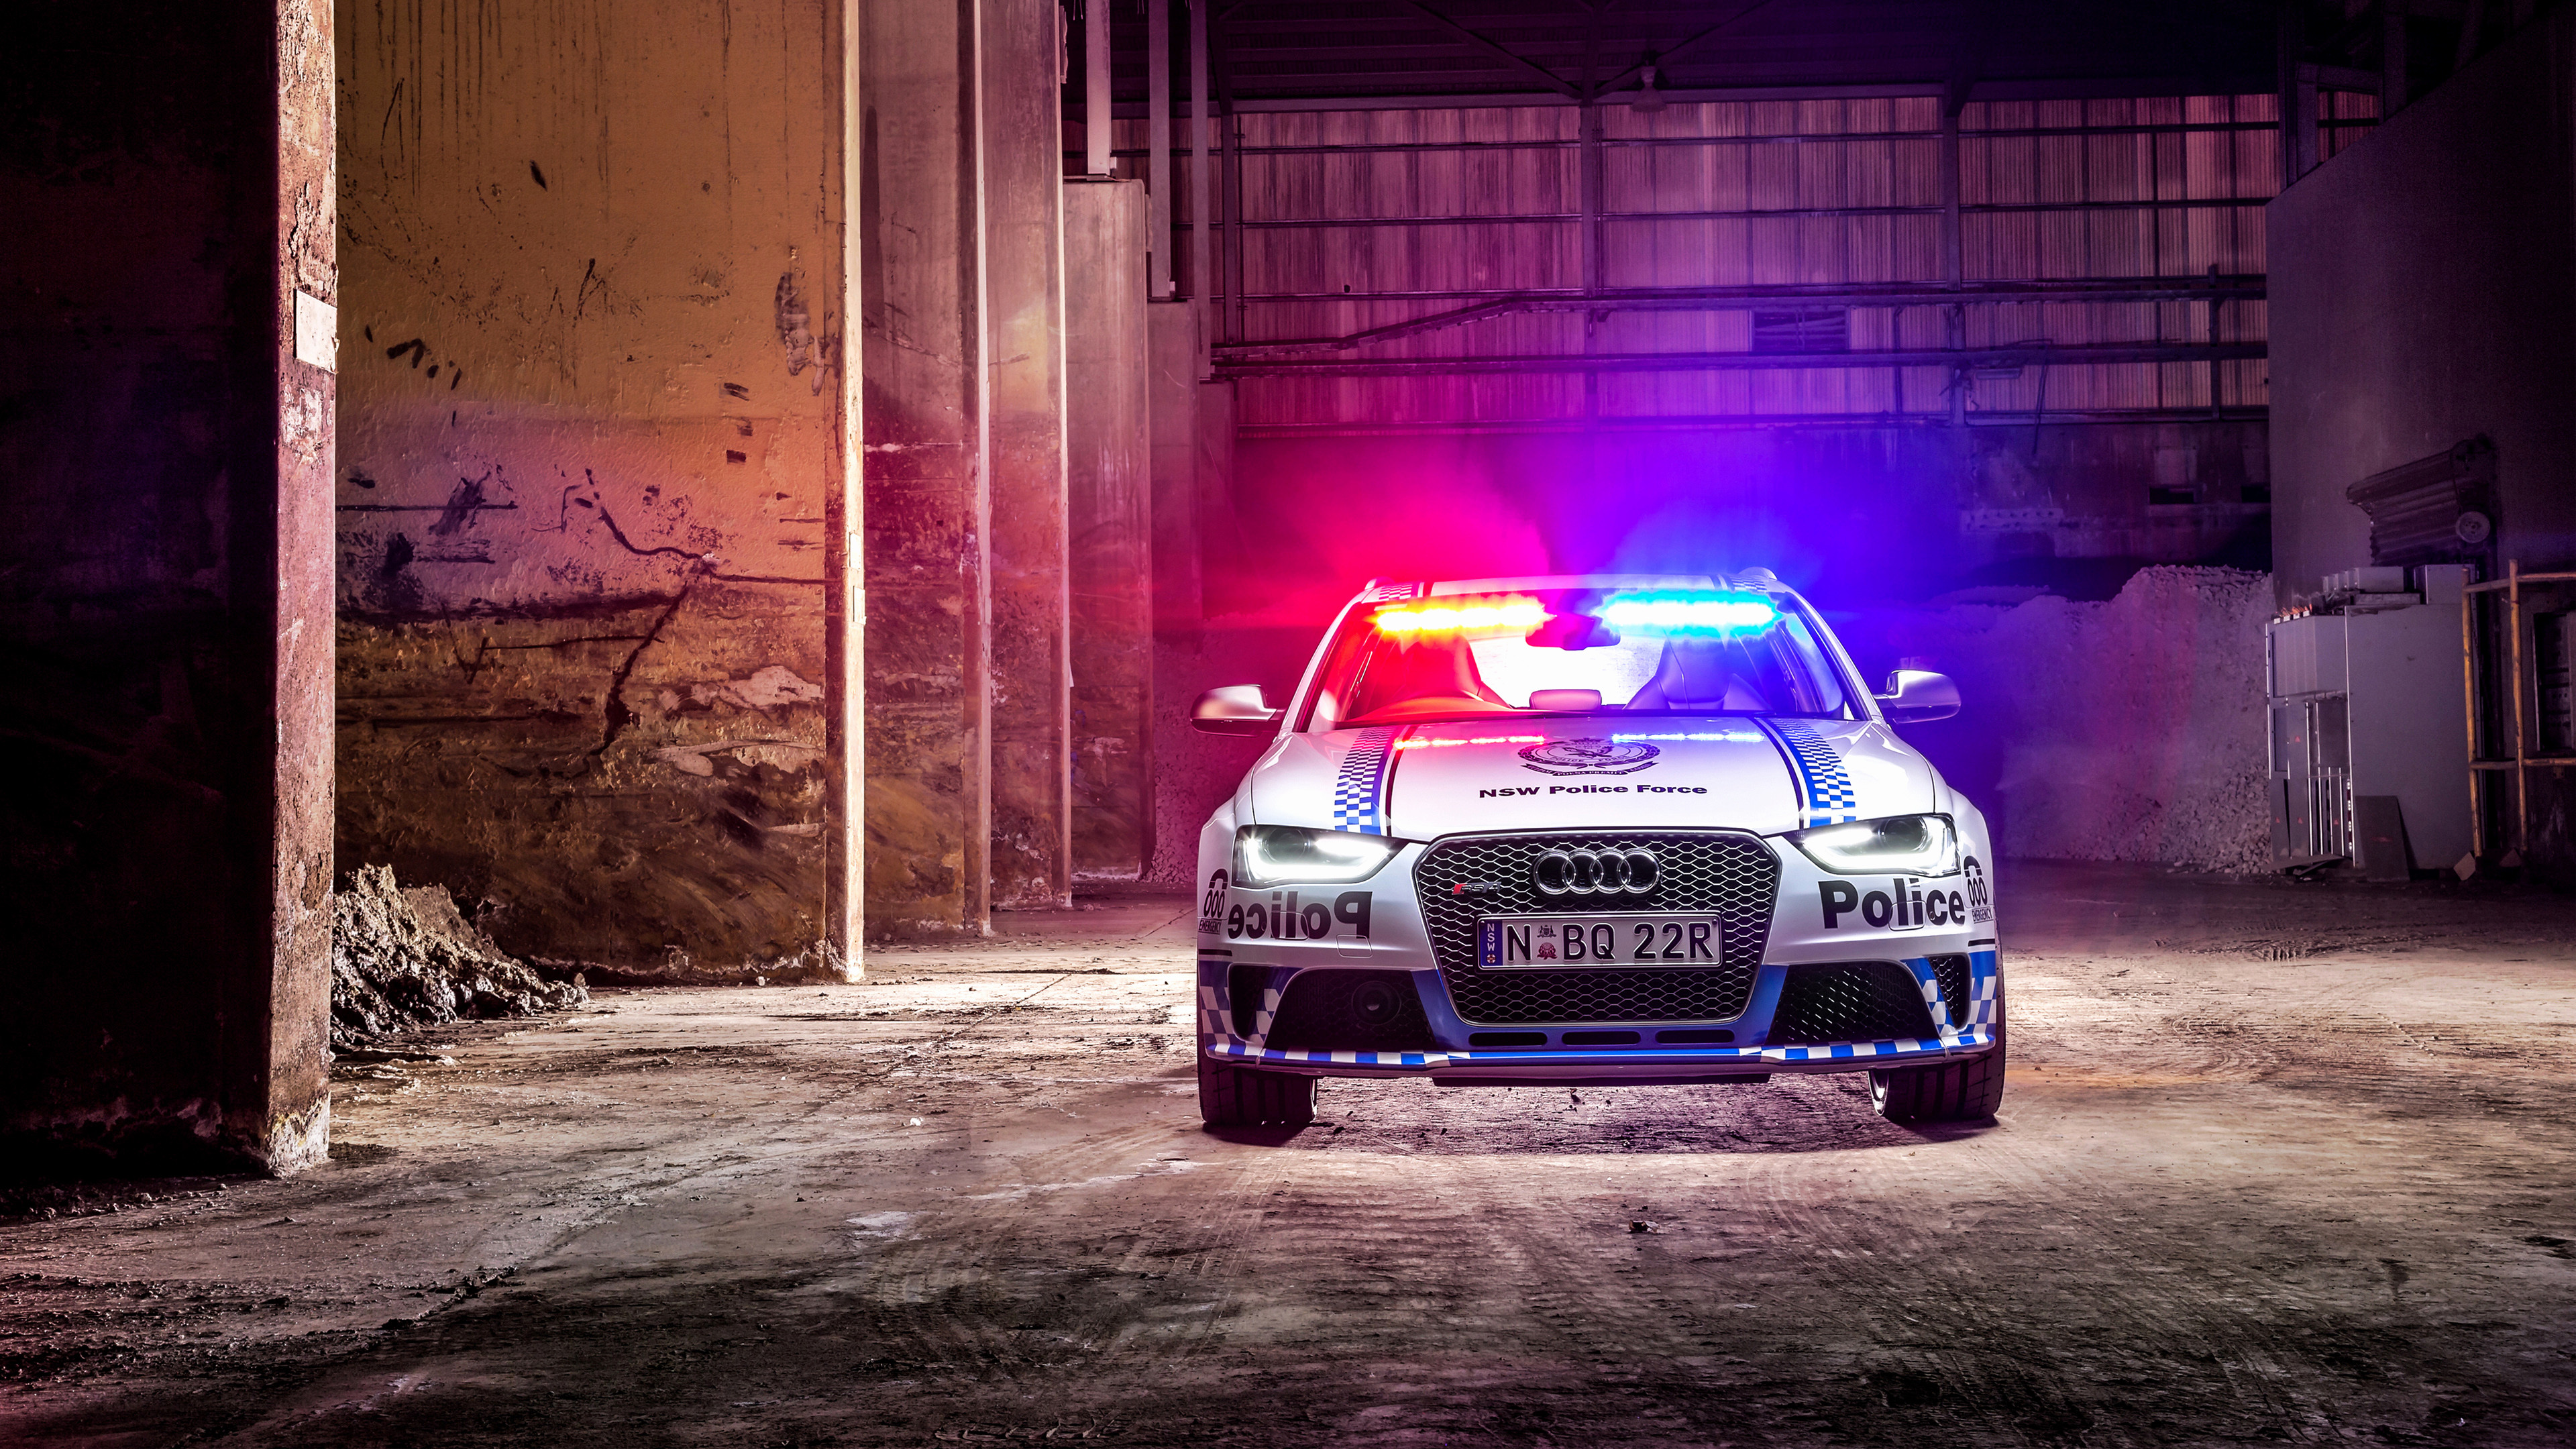 3840x2160 Police Car Wallpapers Beautiful 2015 Audi Rs4 Avant Police Wallpaper Hd Car  Wallpapers